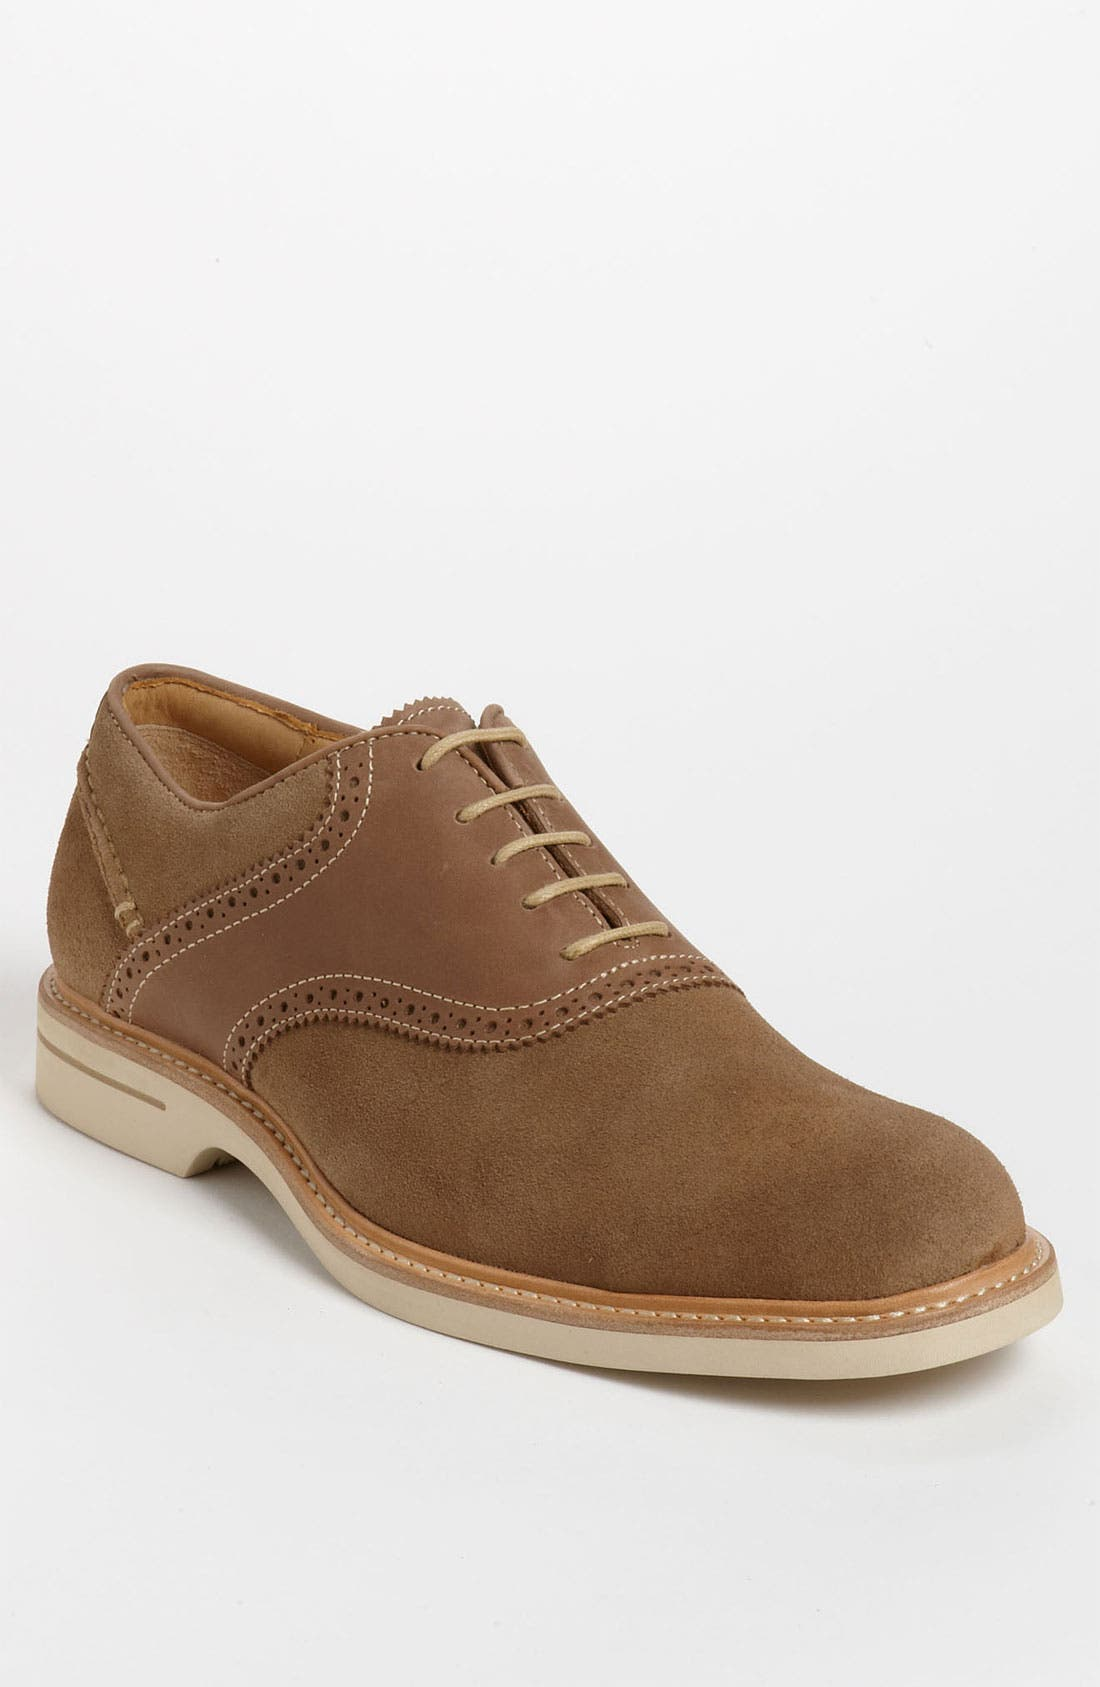 Alternate Image 1 Selected - Sperry Top-Sider® 'Gold Cup' Saddle Shoe